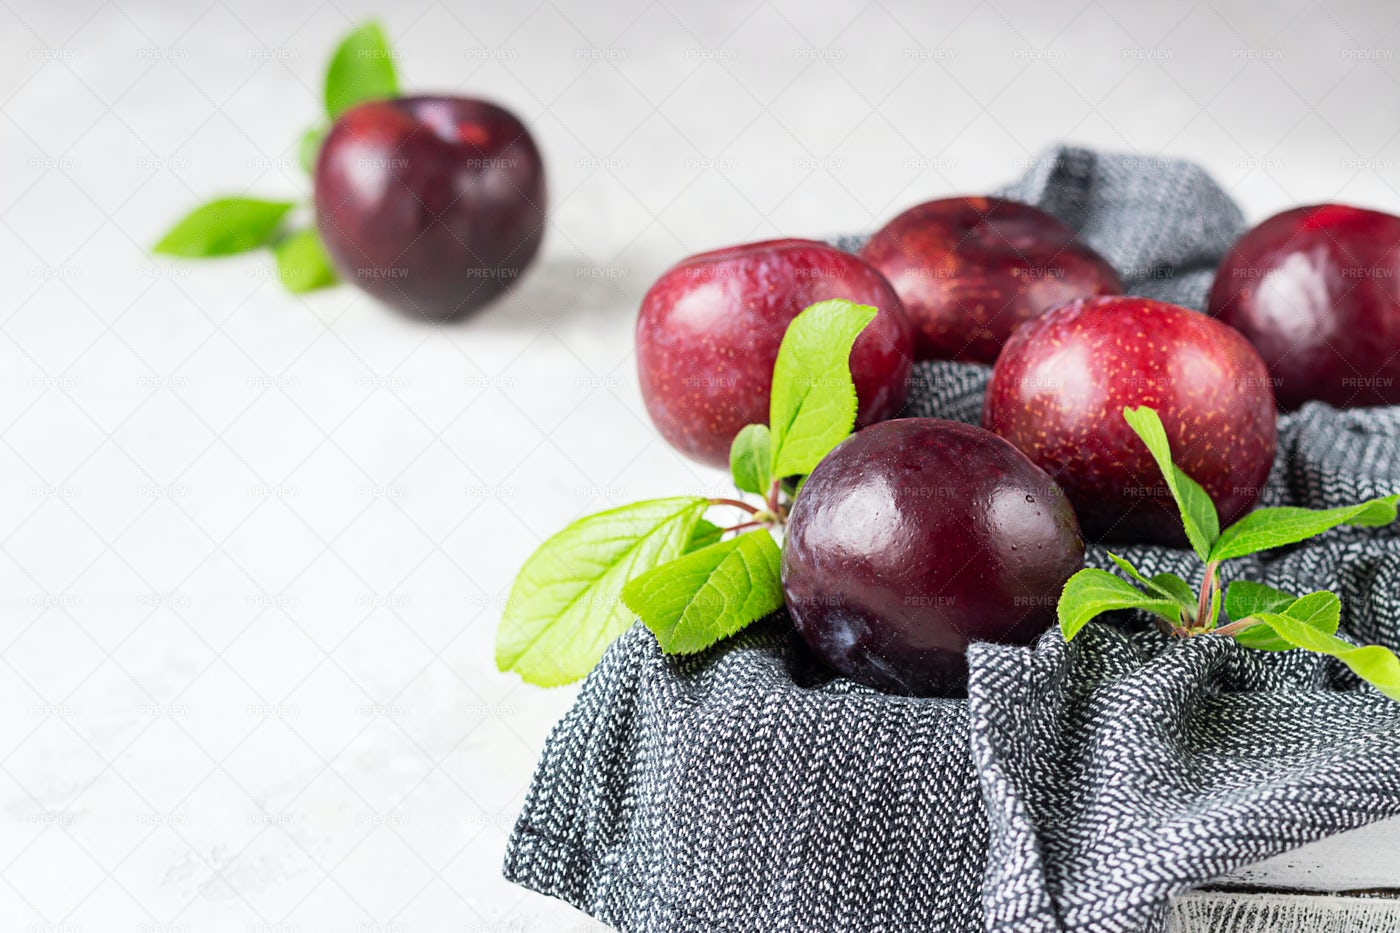 Purple Plums With Leaves: Stock Photos